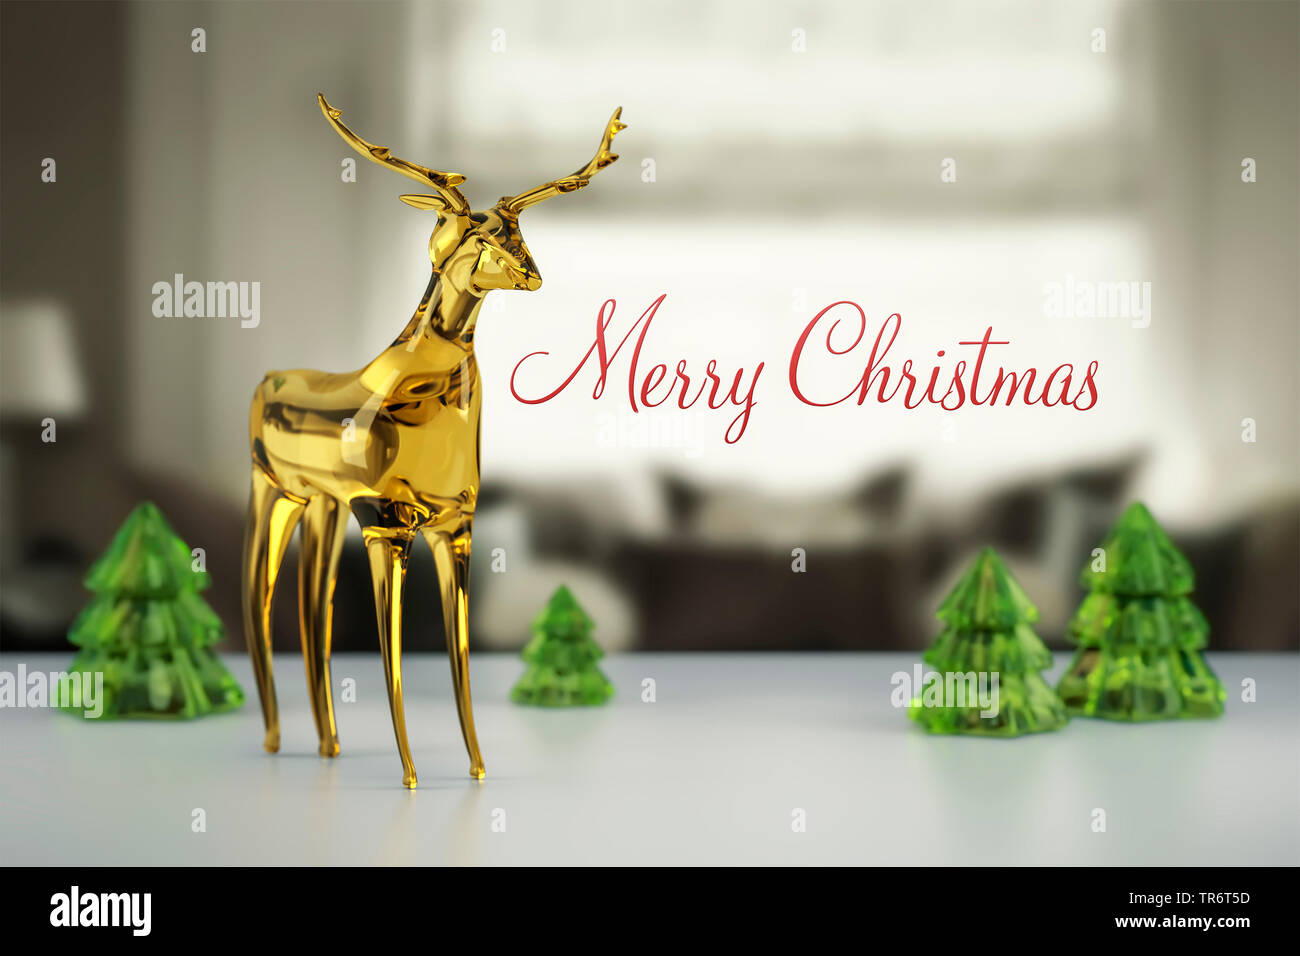 merry christmas card with rein deer, computer graphik - Stock Image